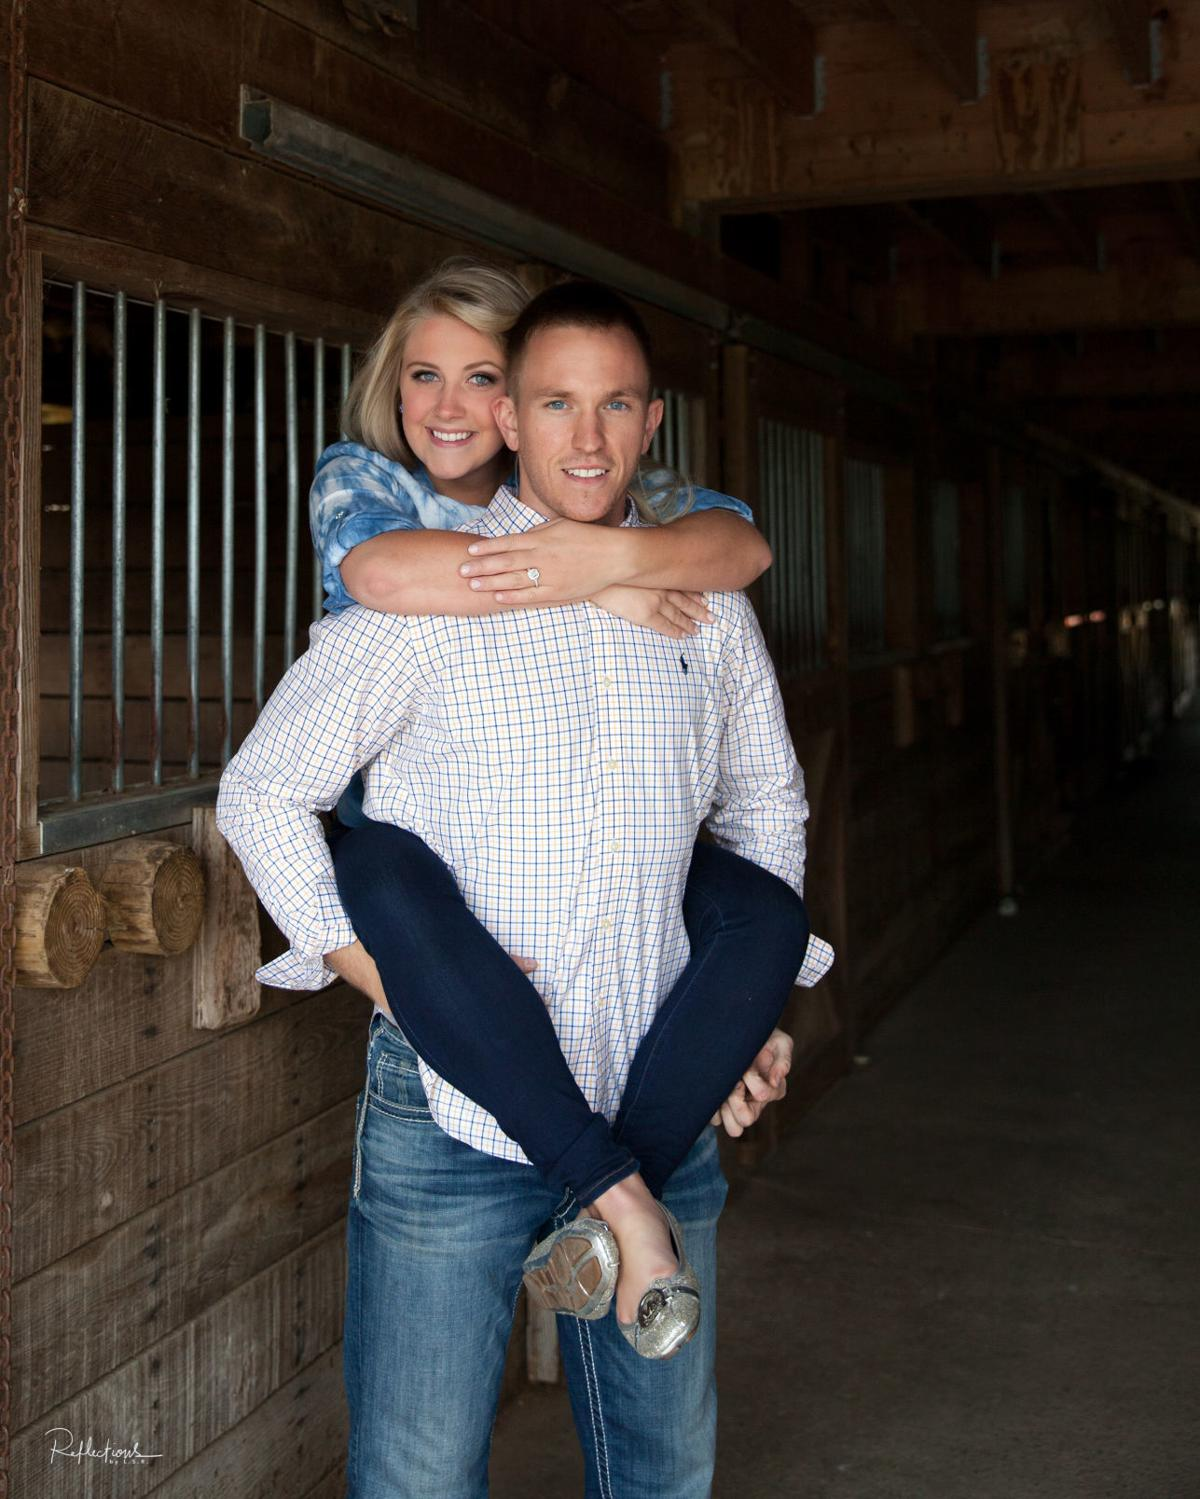 Mary Ann Tucker Blessed Lucky To Work With Engaged Couples At 4t Arena News